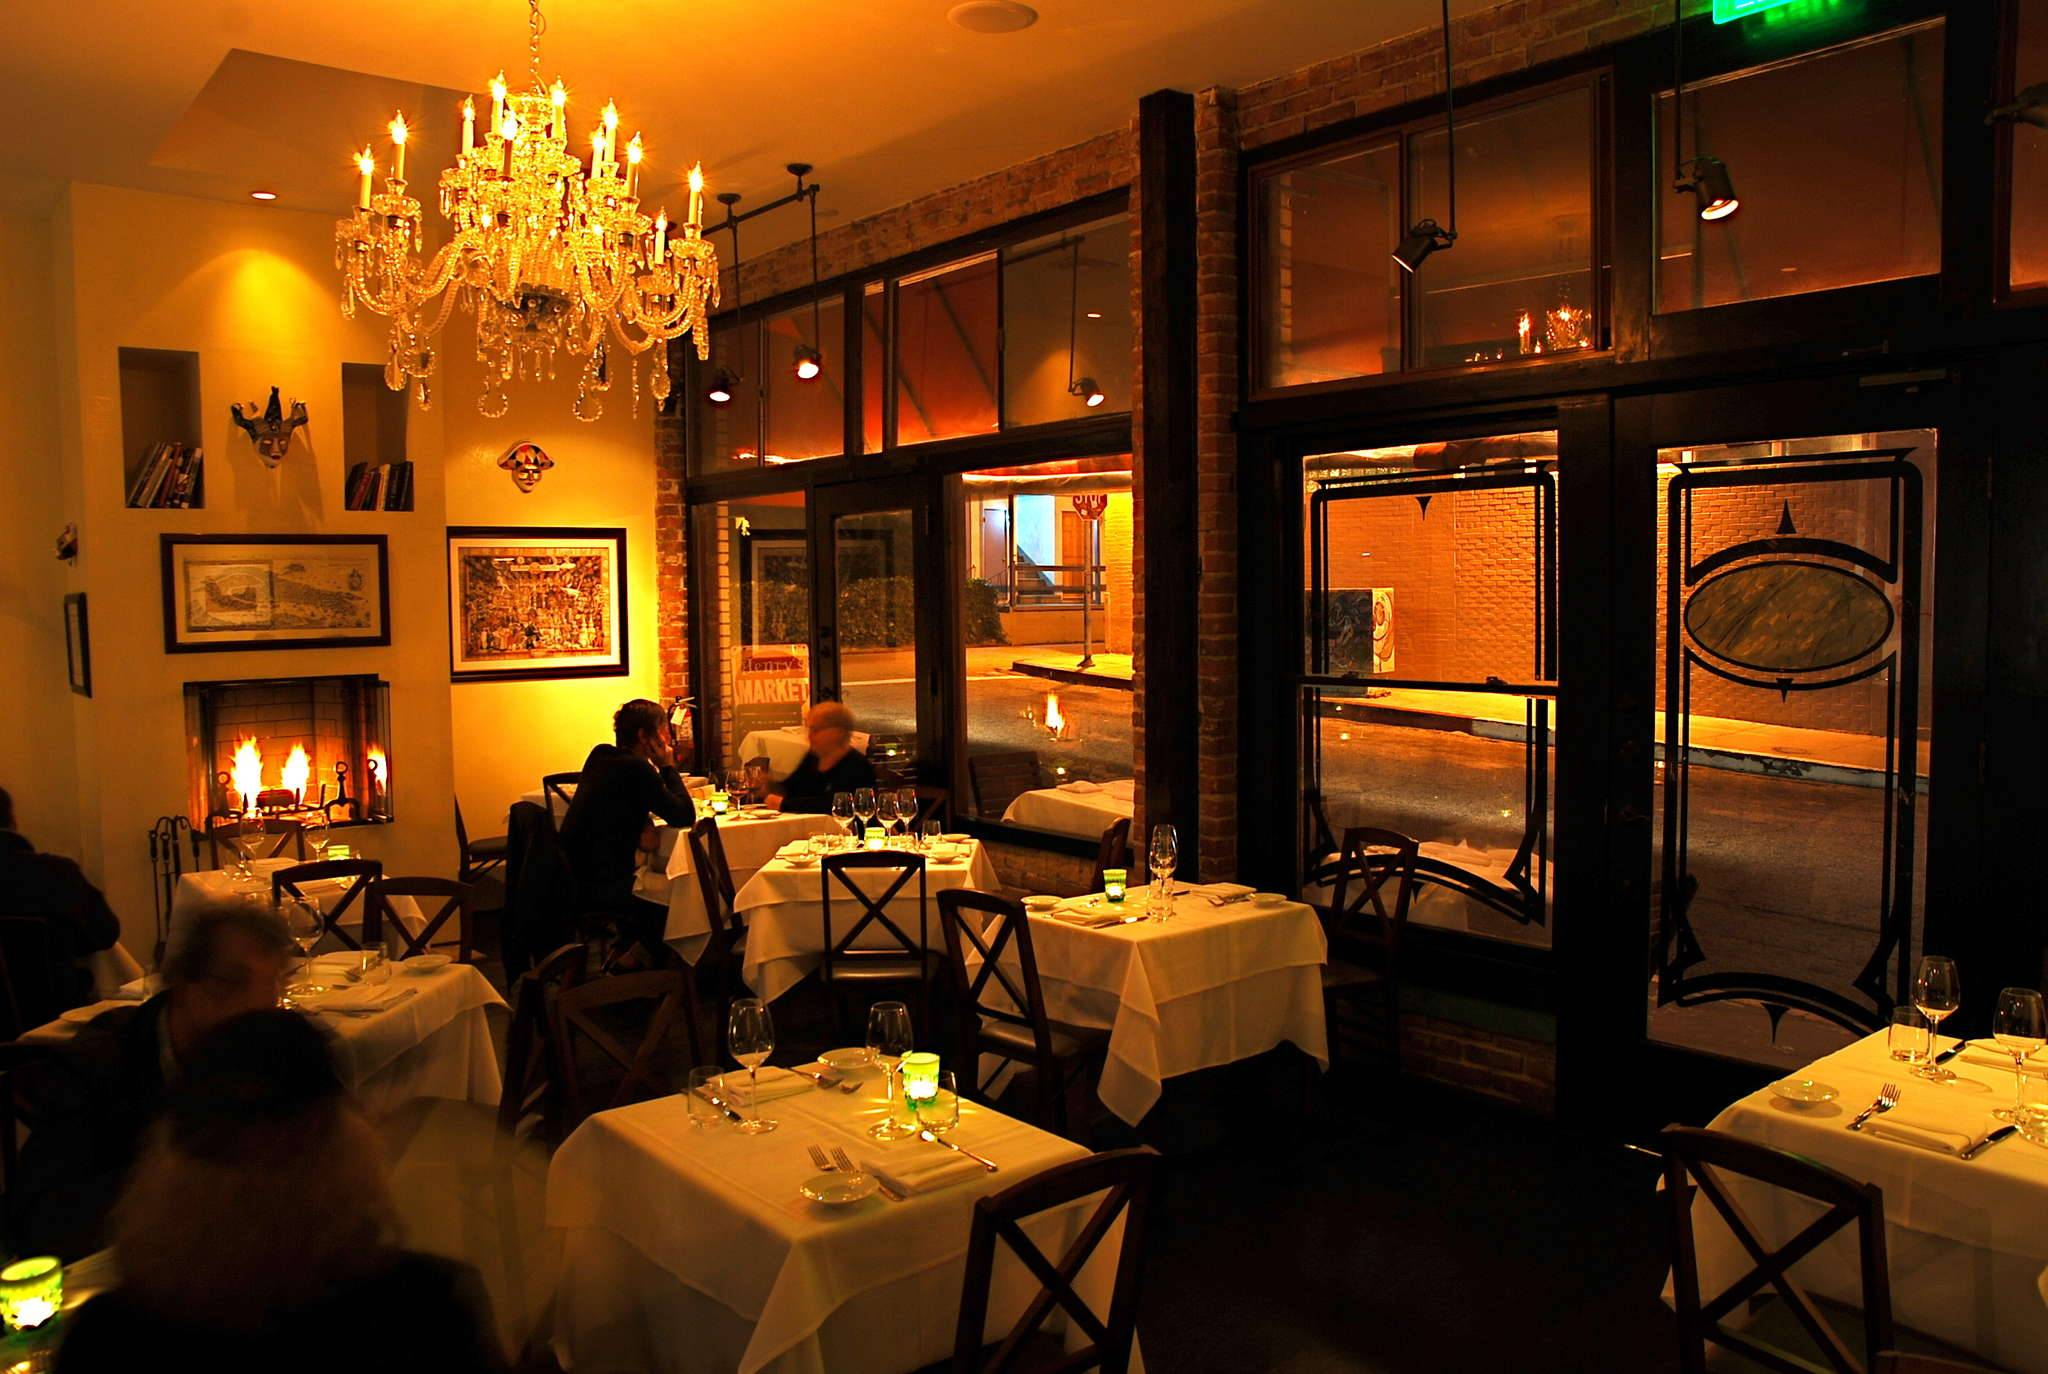 Top 5 romantic restaurants in los angeles orange county for Romantic restaurants in california